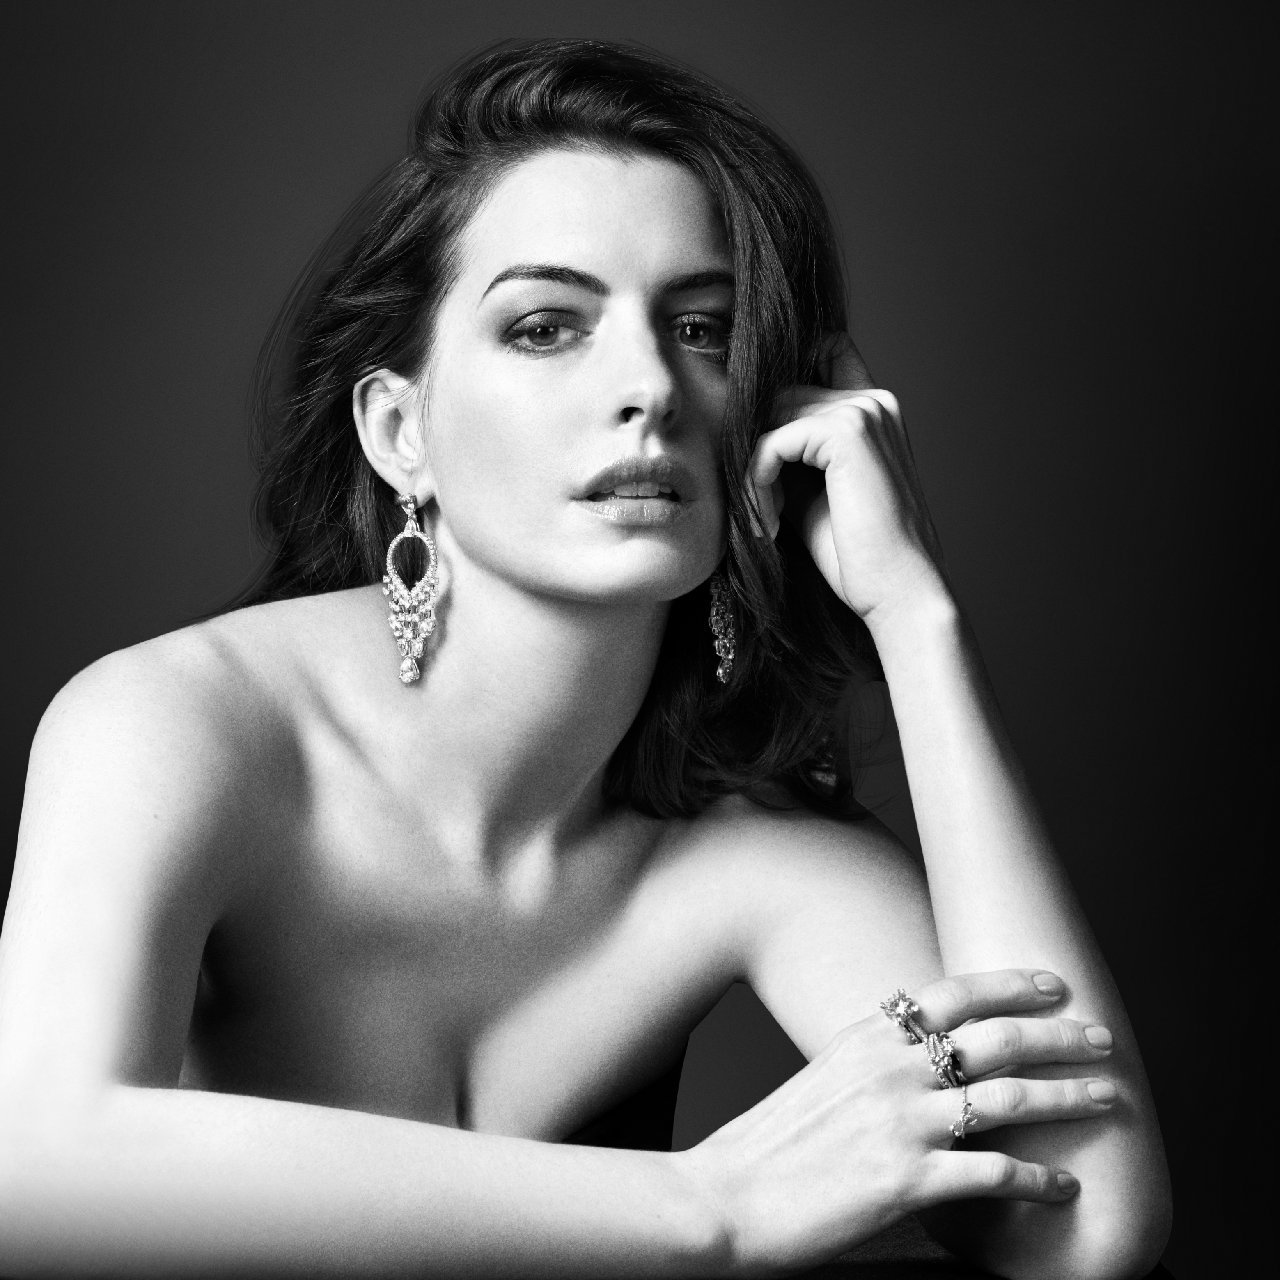 Anne Hathaway Photo 1785 Of 1946 Pics, Wallpaper